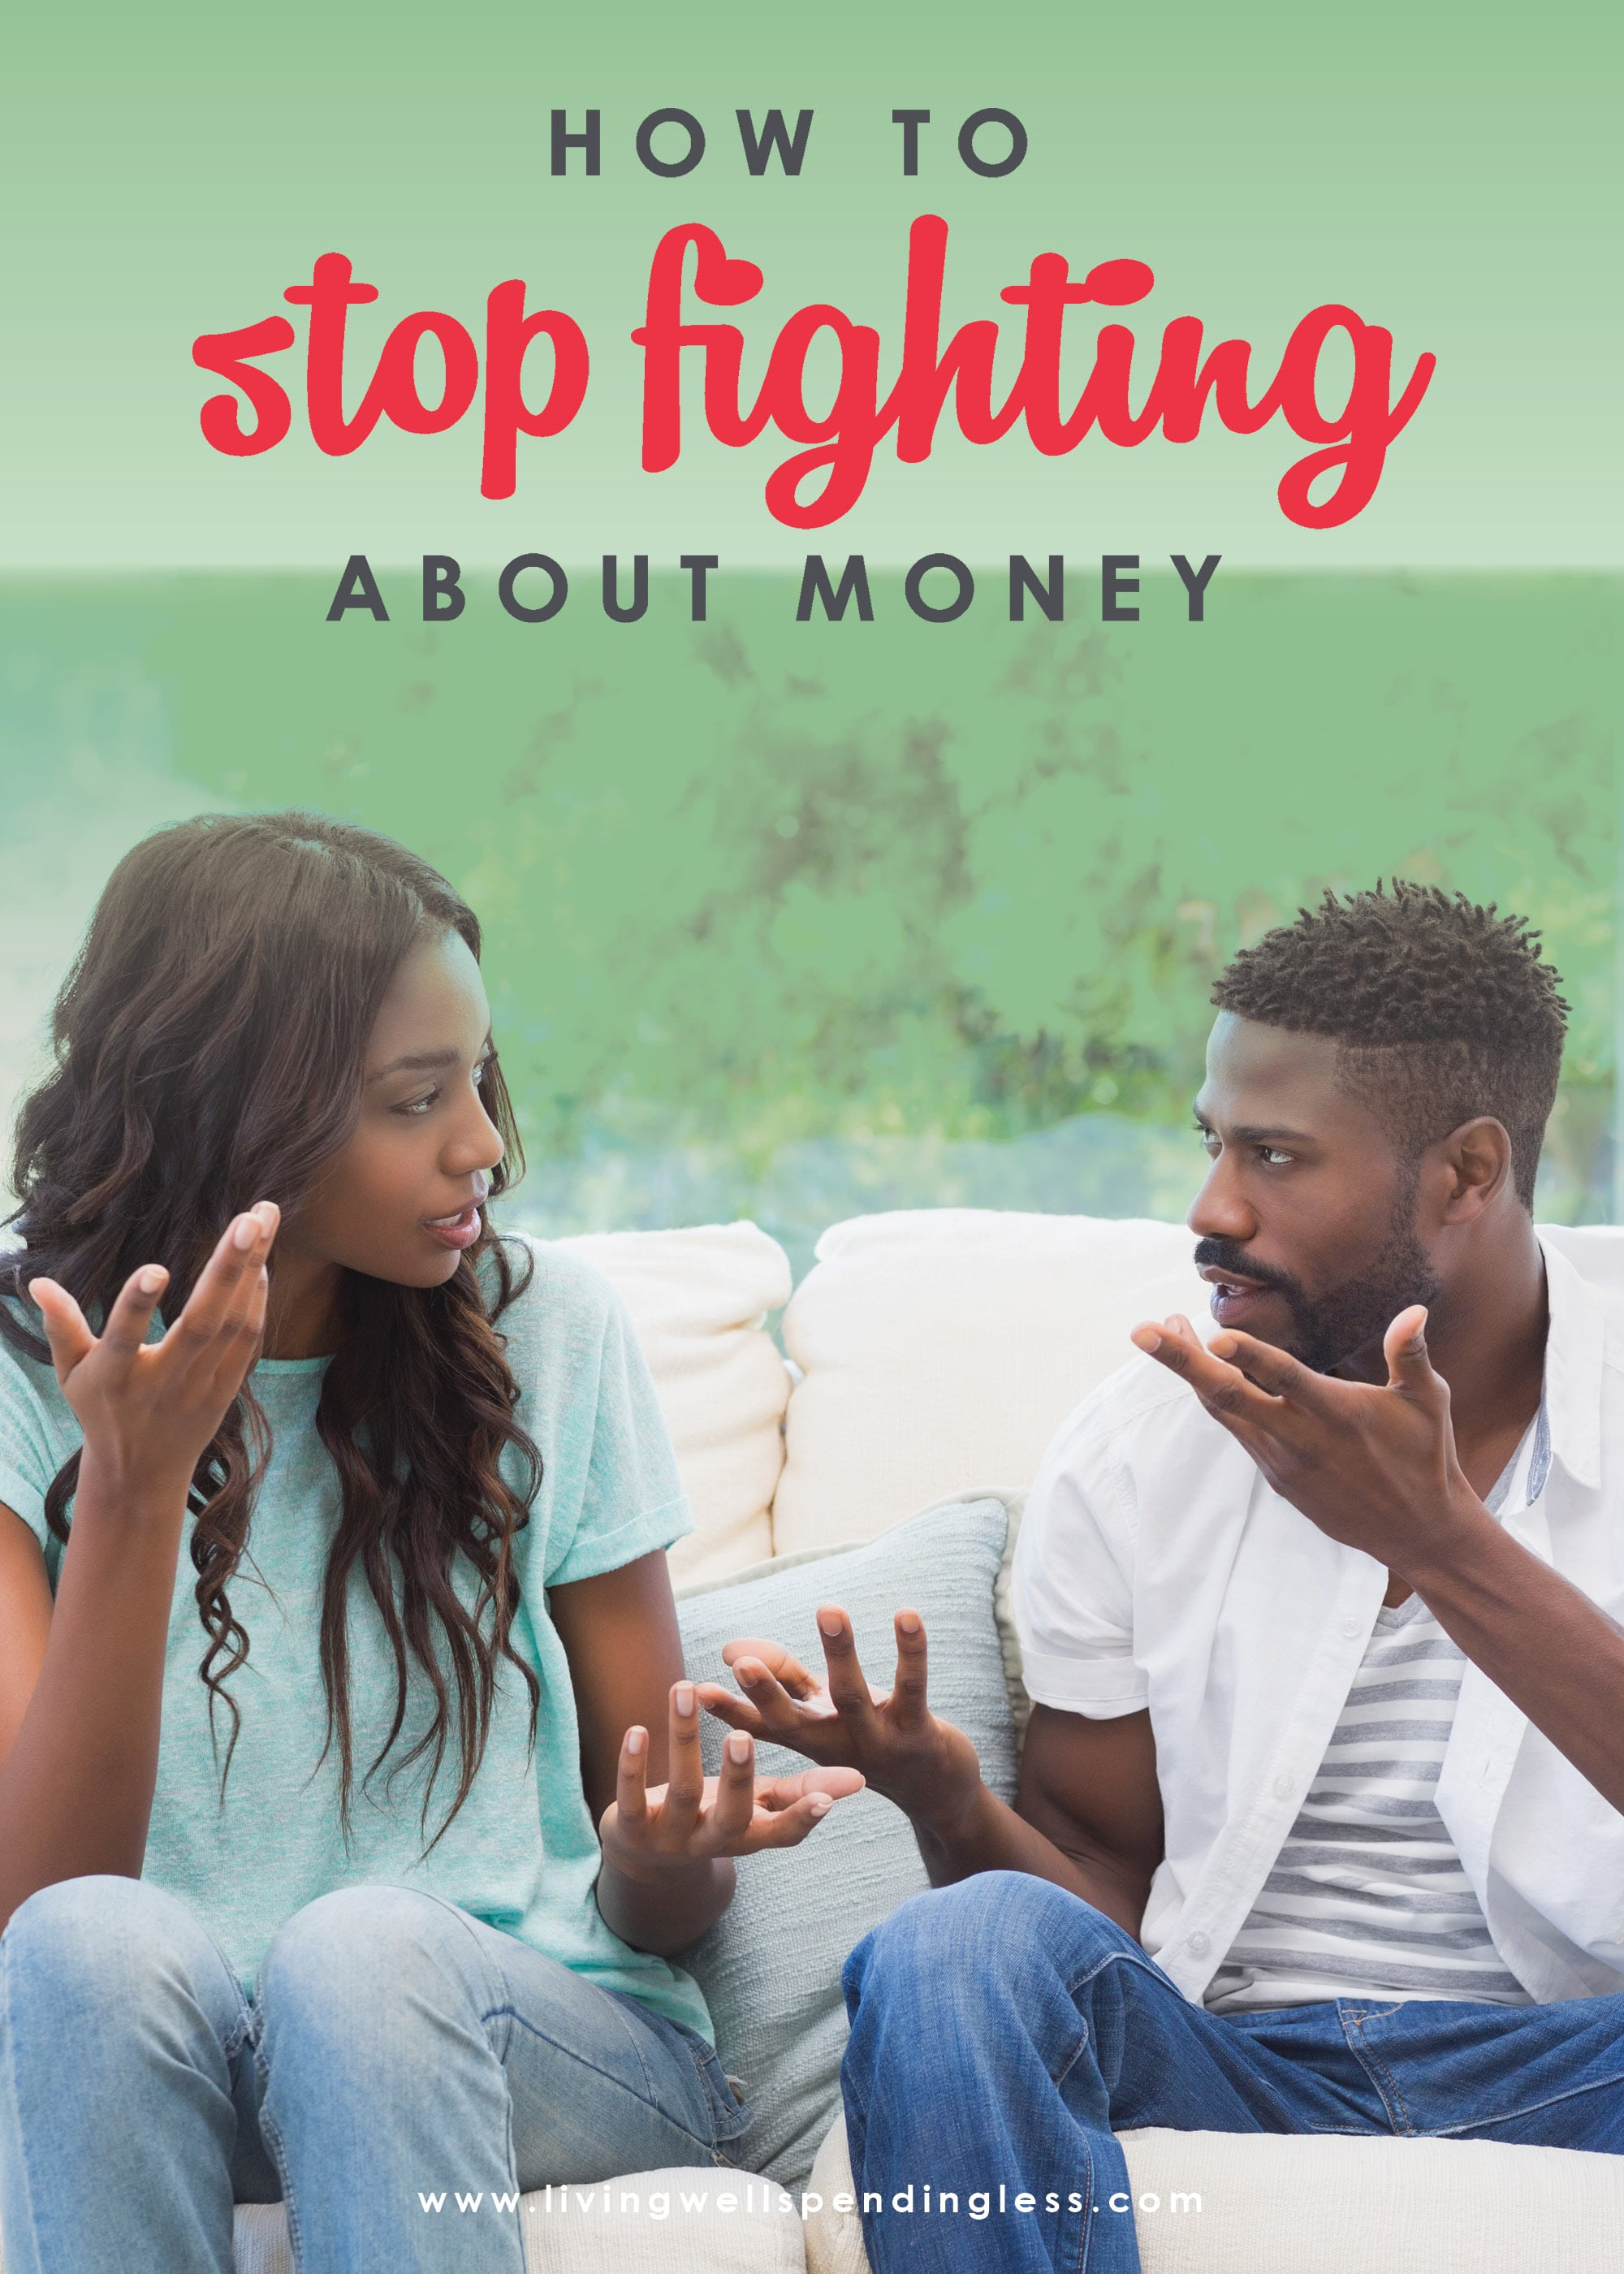 Use these four strategies to stop fighting about money.